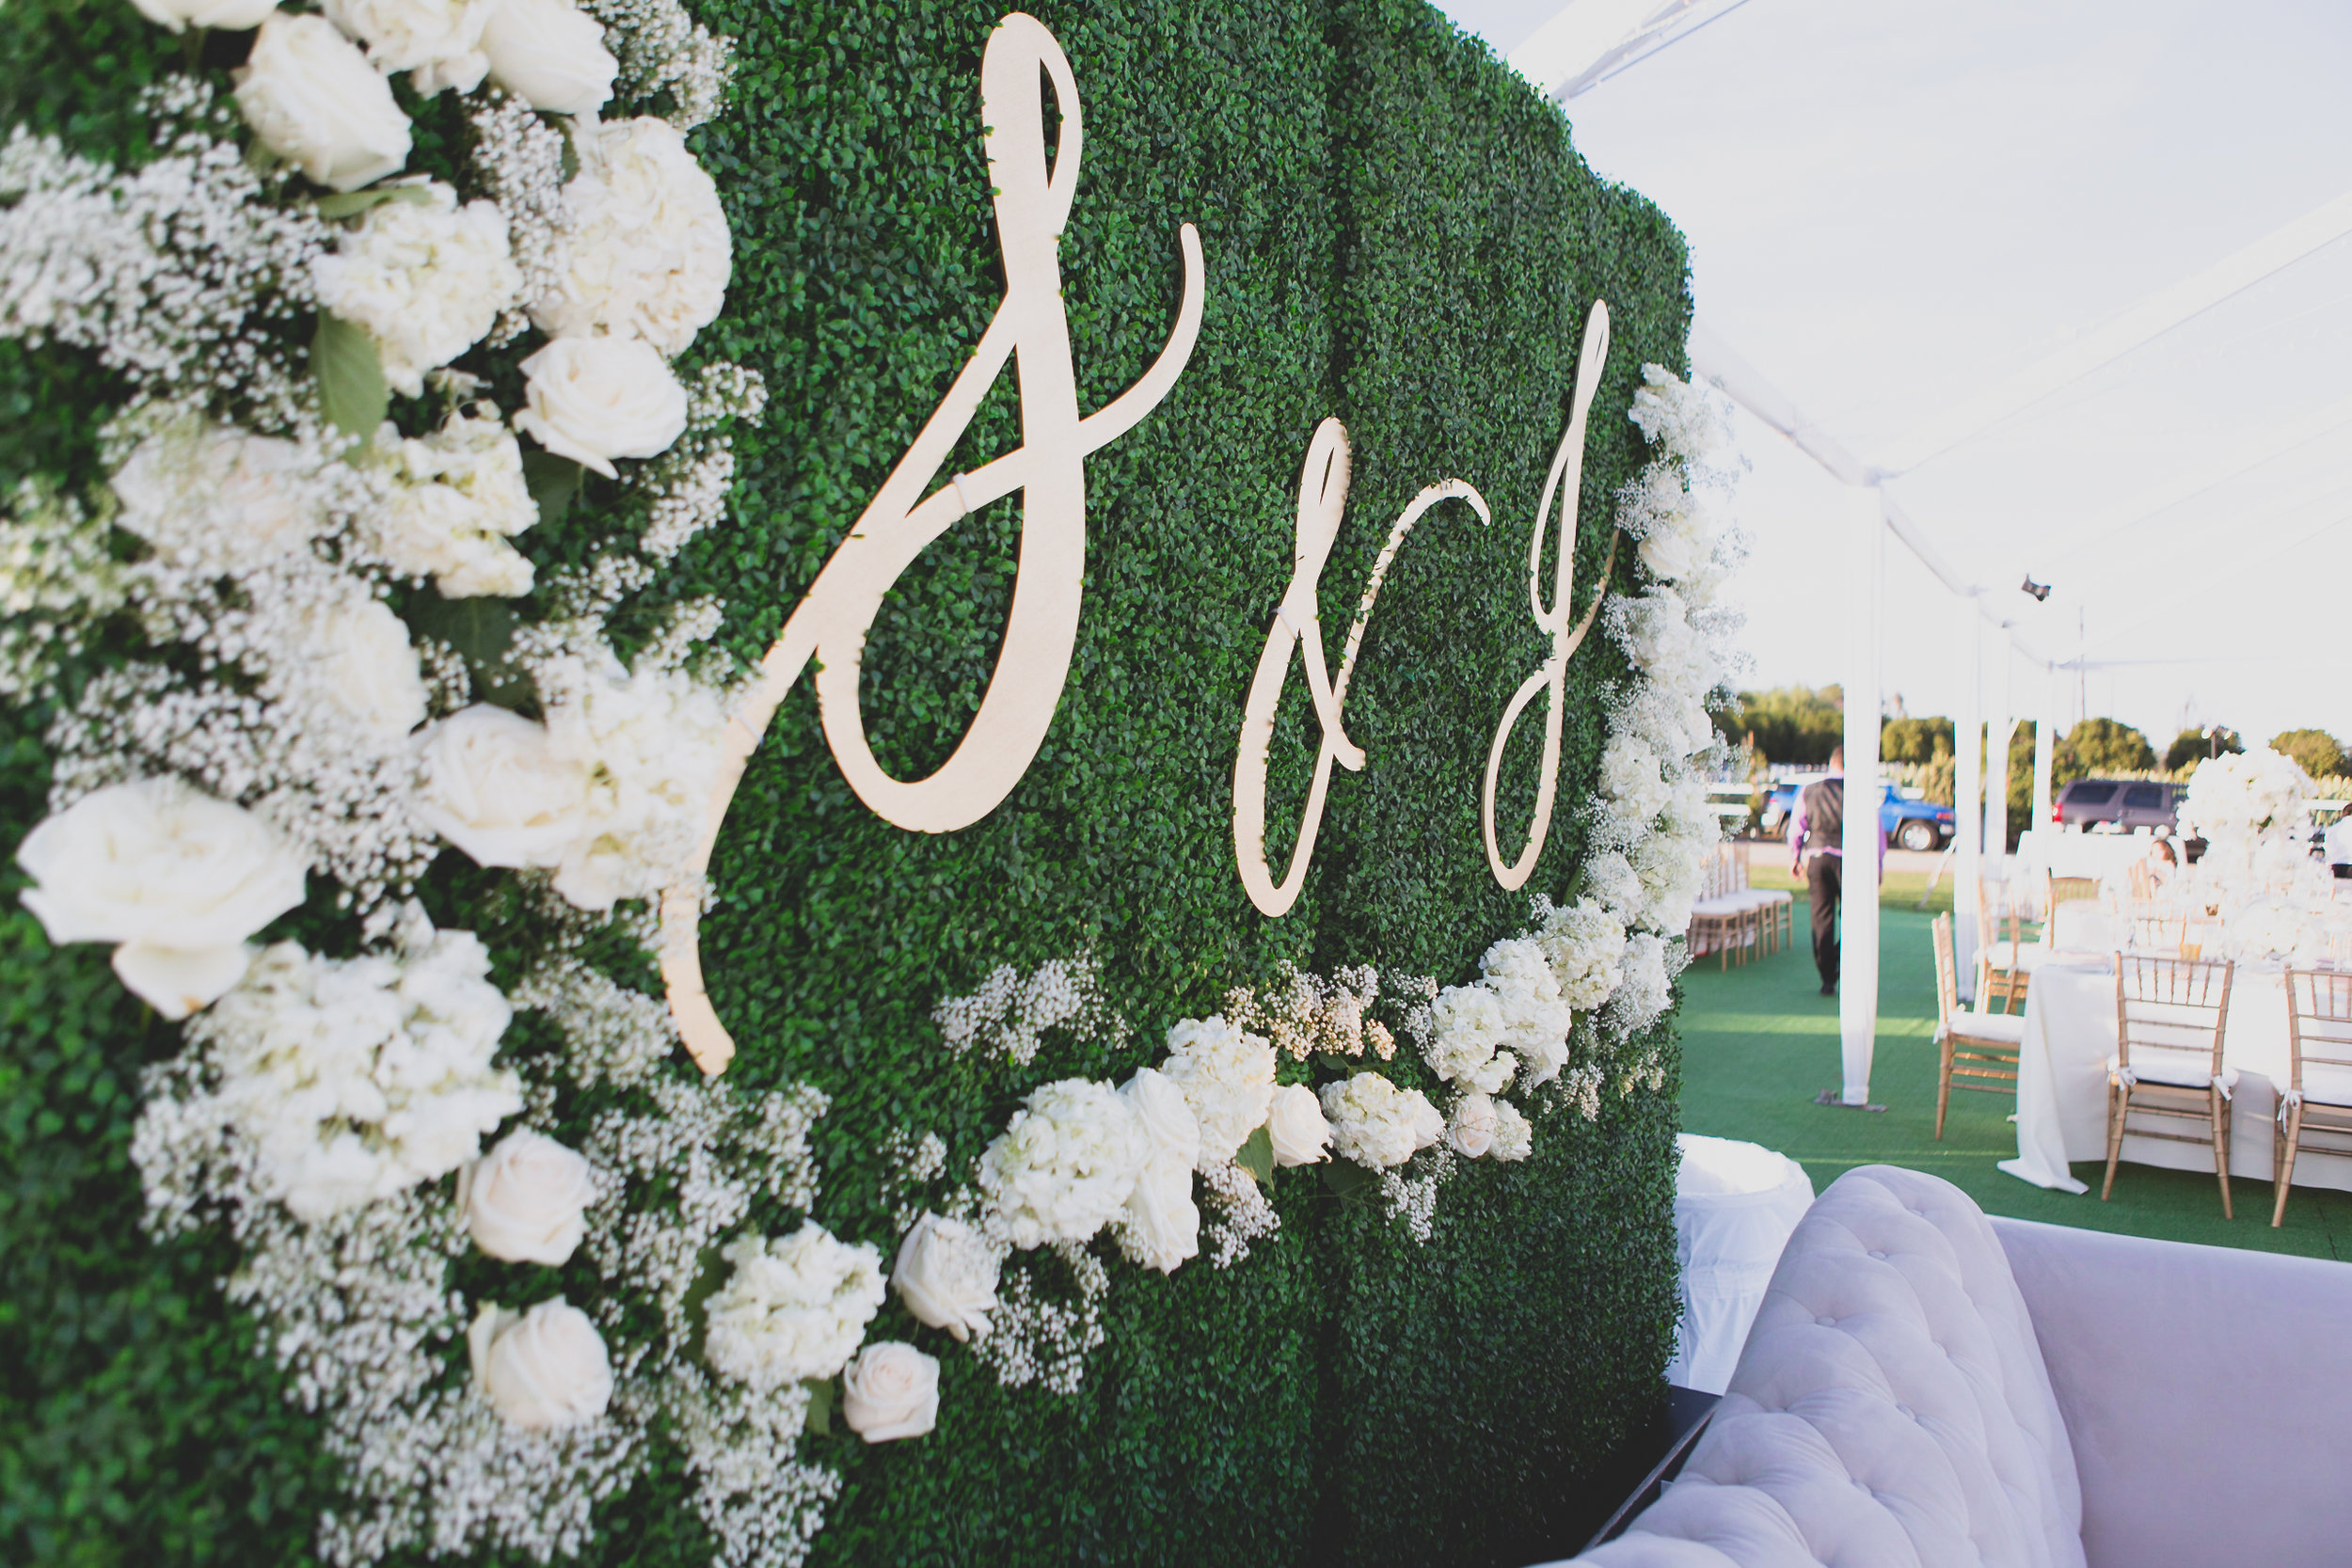 A couch set in front of an ivory wall at an outdoor wedding venue.